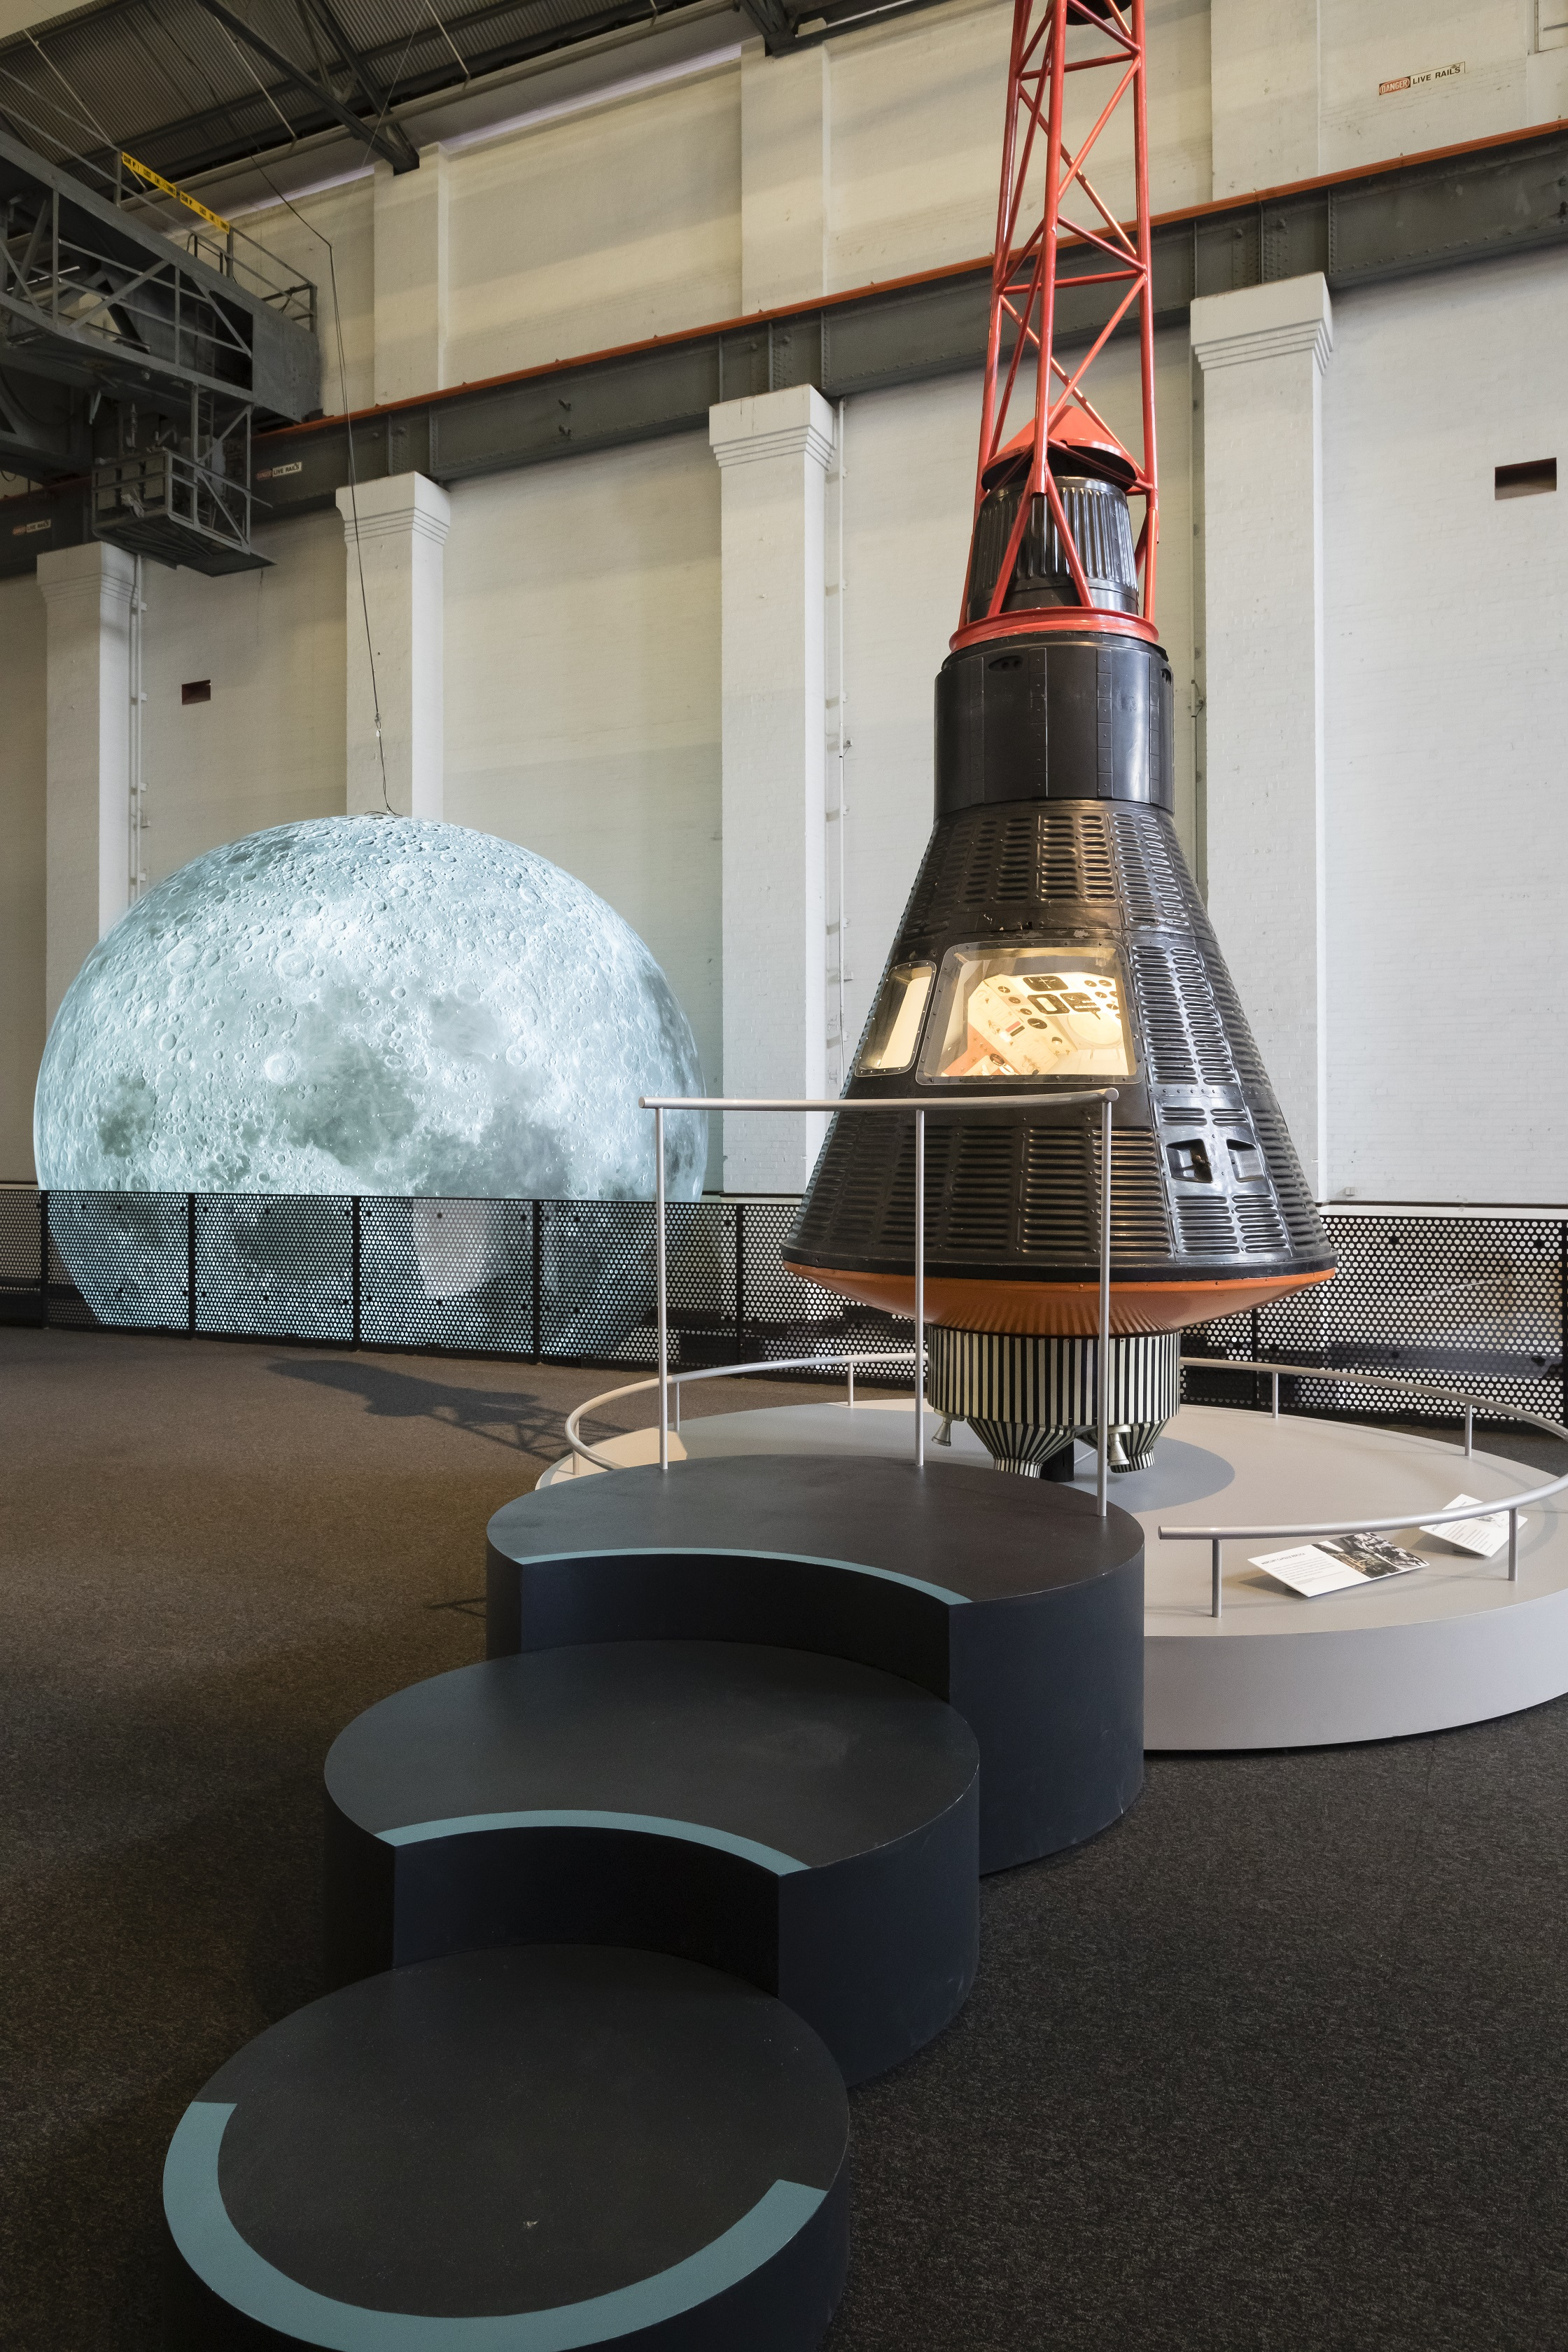 A conical shaped spacecraft with large circular steps forming a viewing platform in front of it.